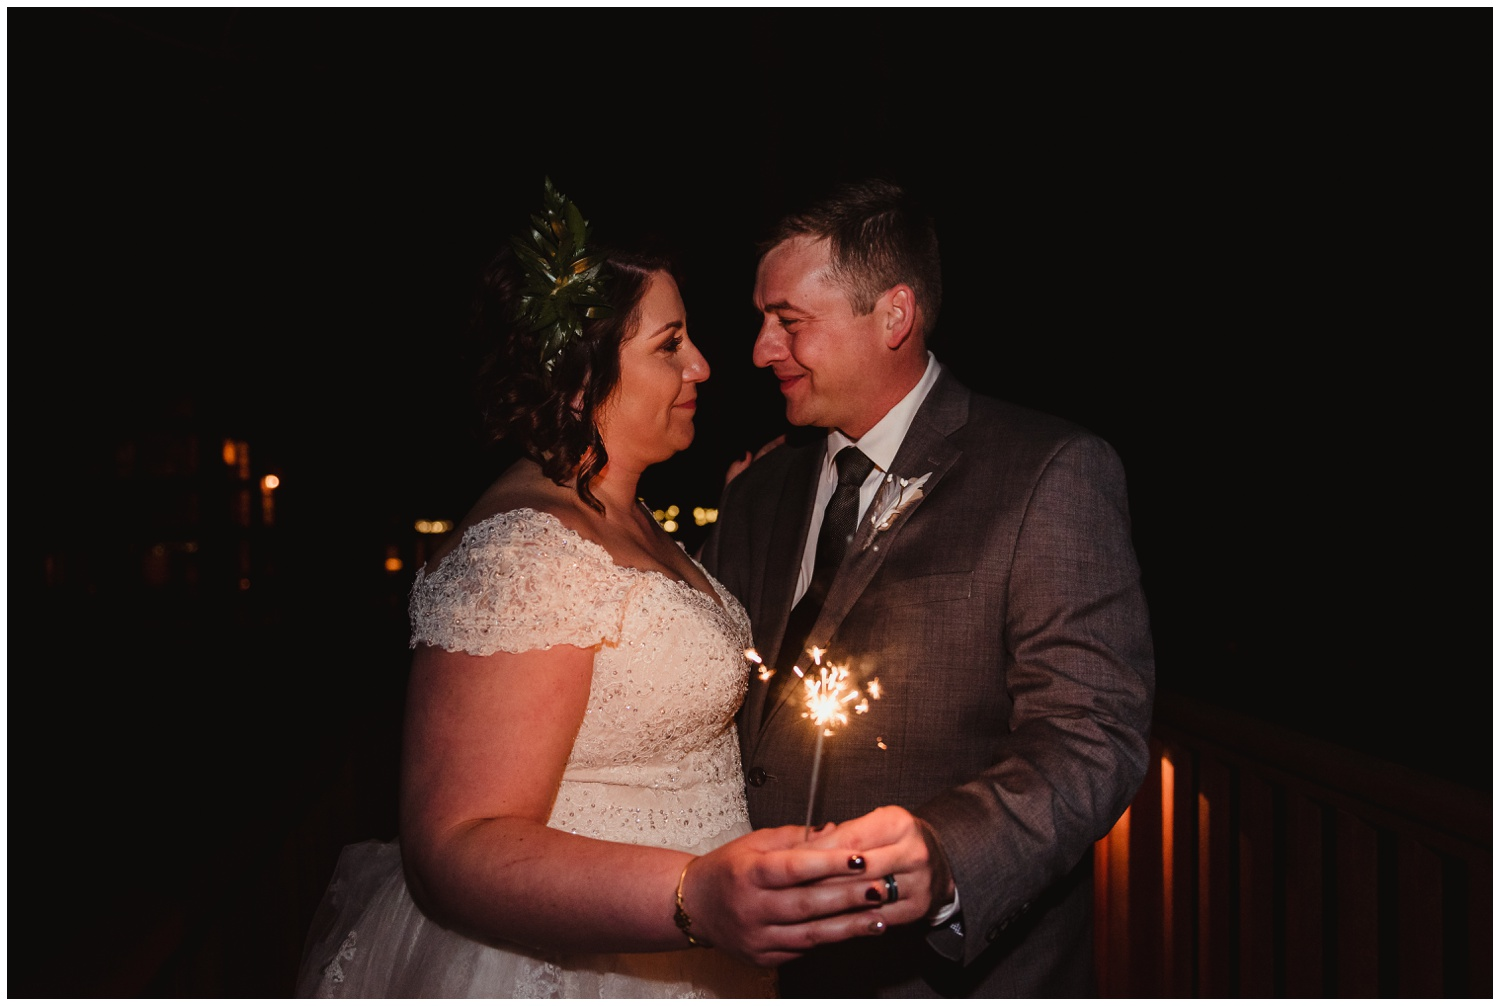 The bride and groom look at each other while holding a sparkler on their wedding day at the Barn at Valhalla in Chapel Hill, taken by Rose Trail Images.